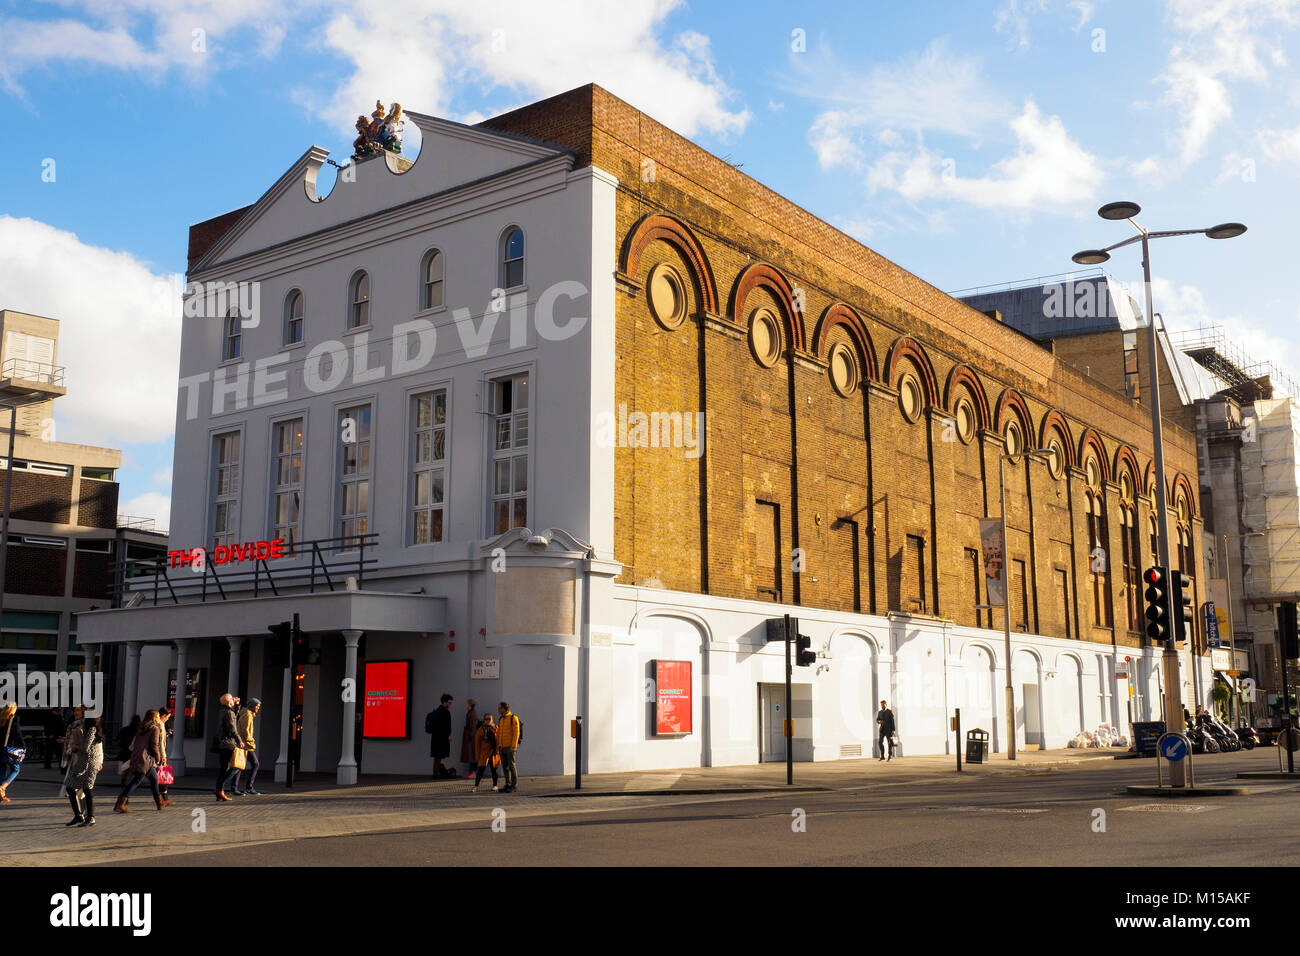 The Old Vic theatre - London, England - Stock Image